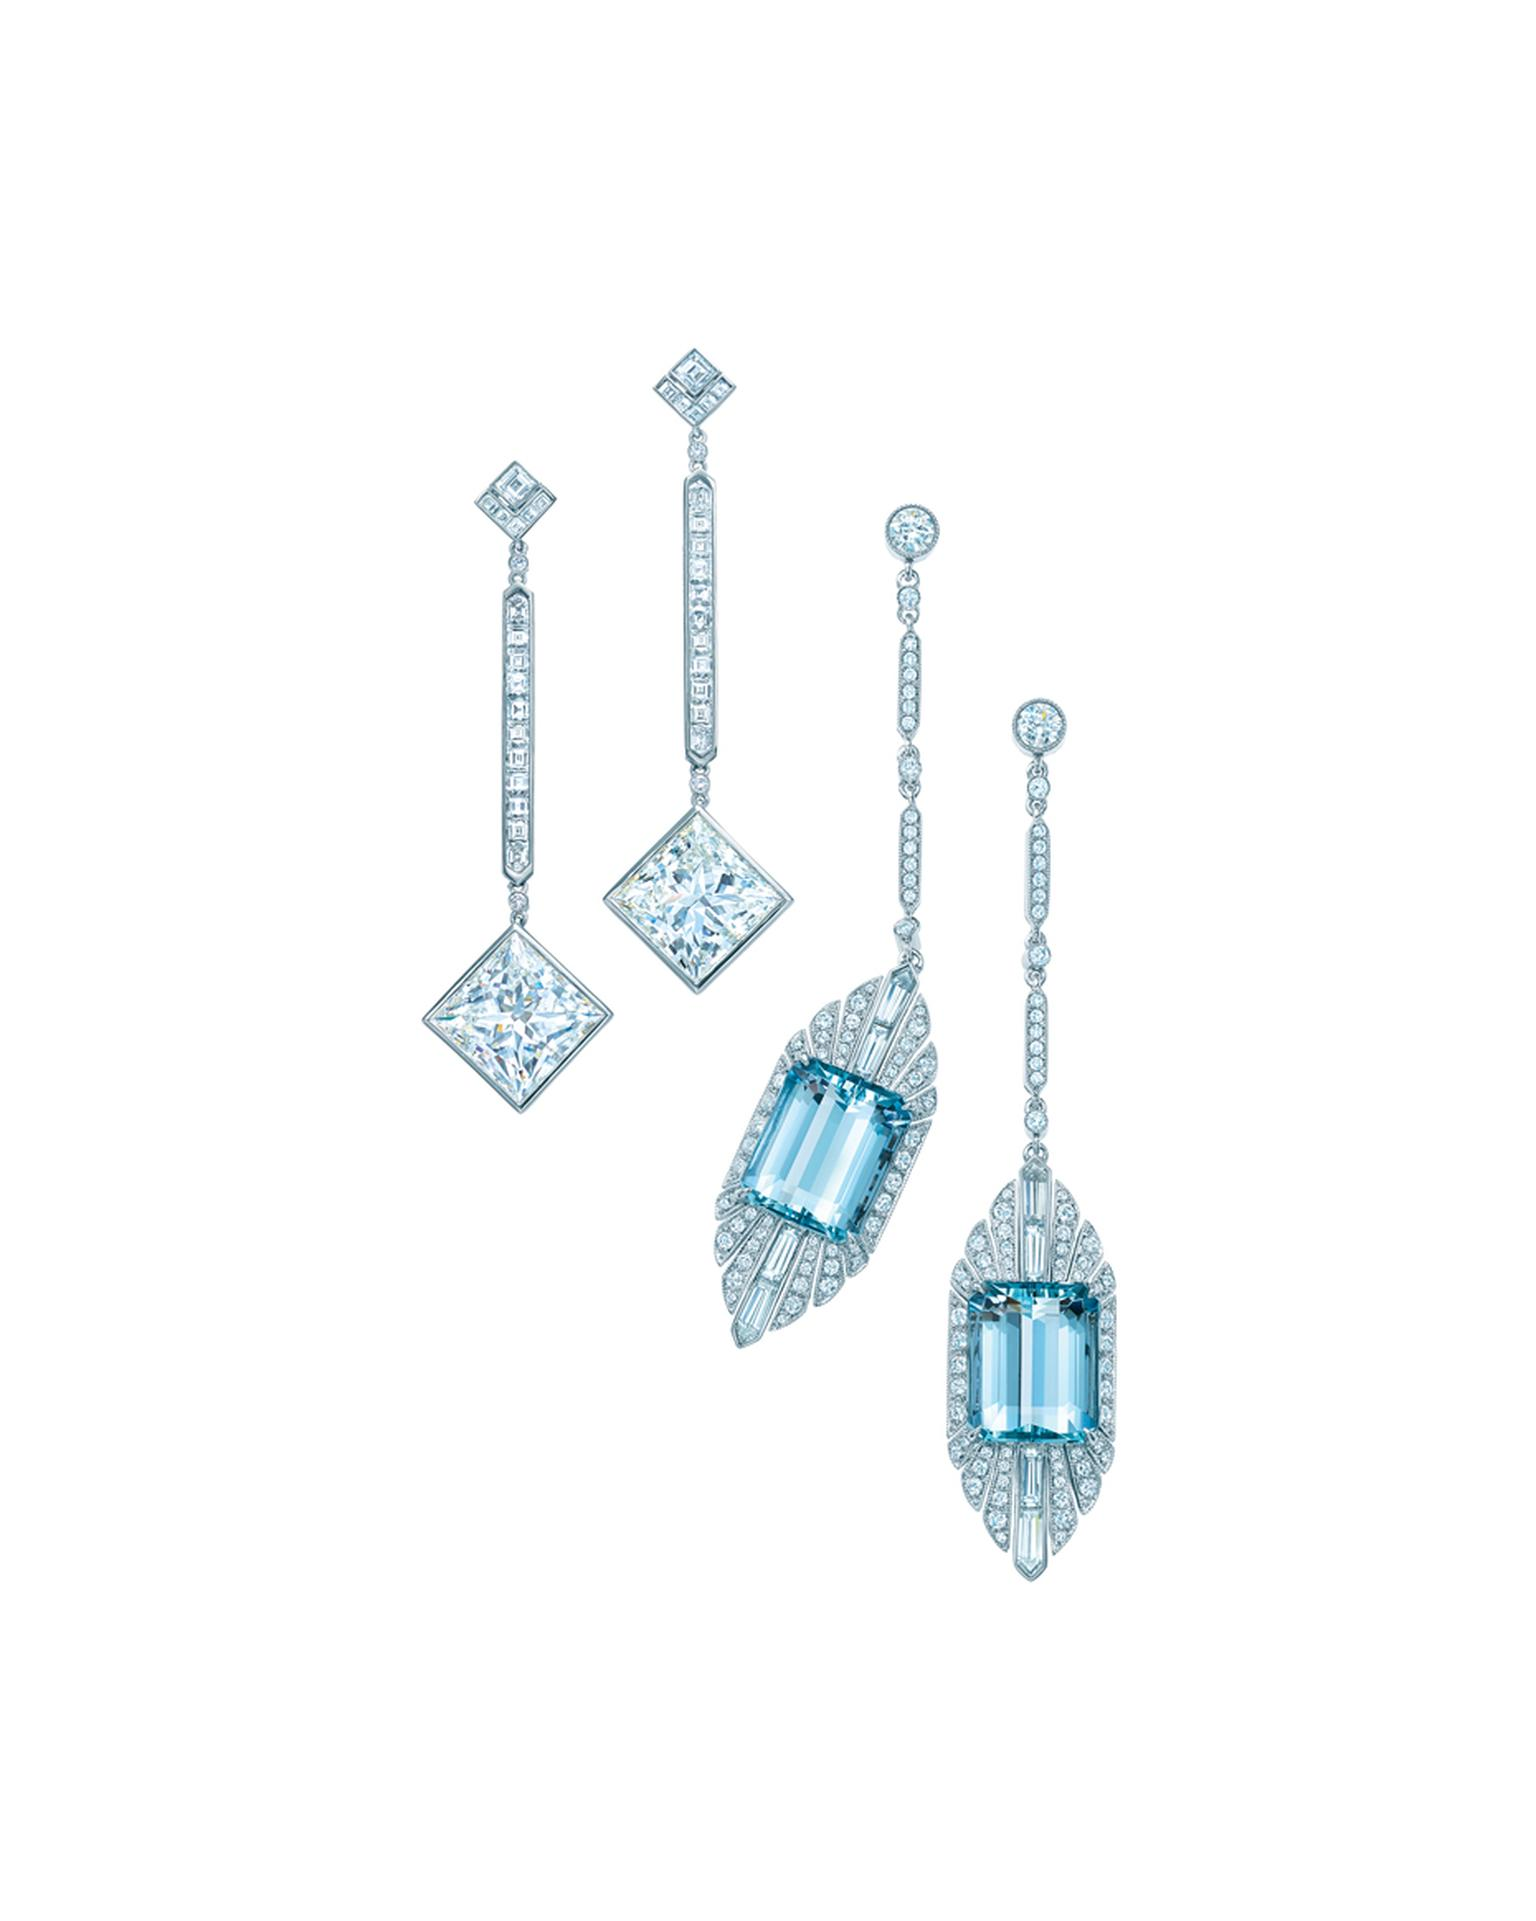 The Tiffany & Co. diamond drop earrings in platinum, left, worn by Jessica Biel at the Academy Awards 2014